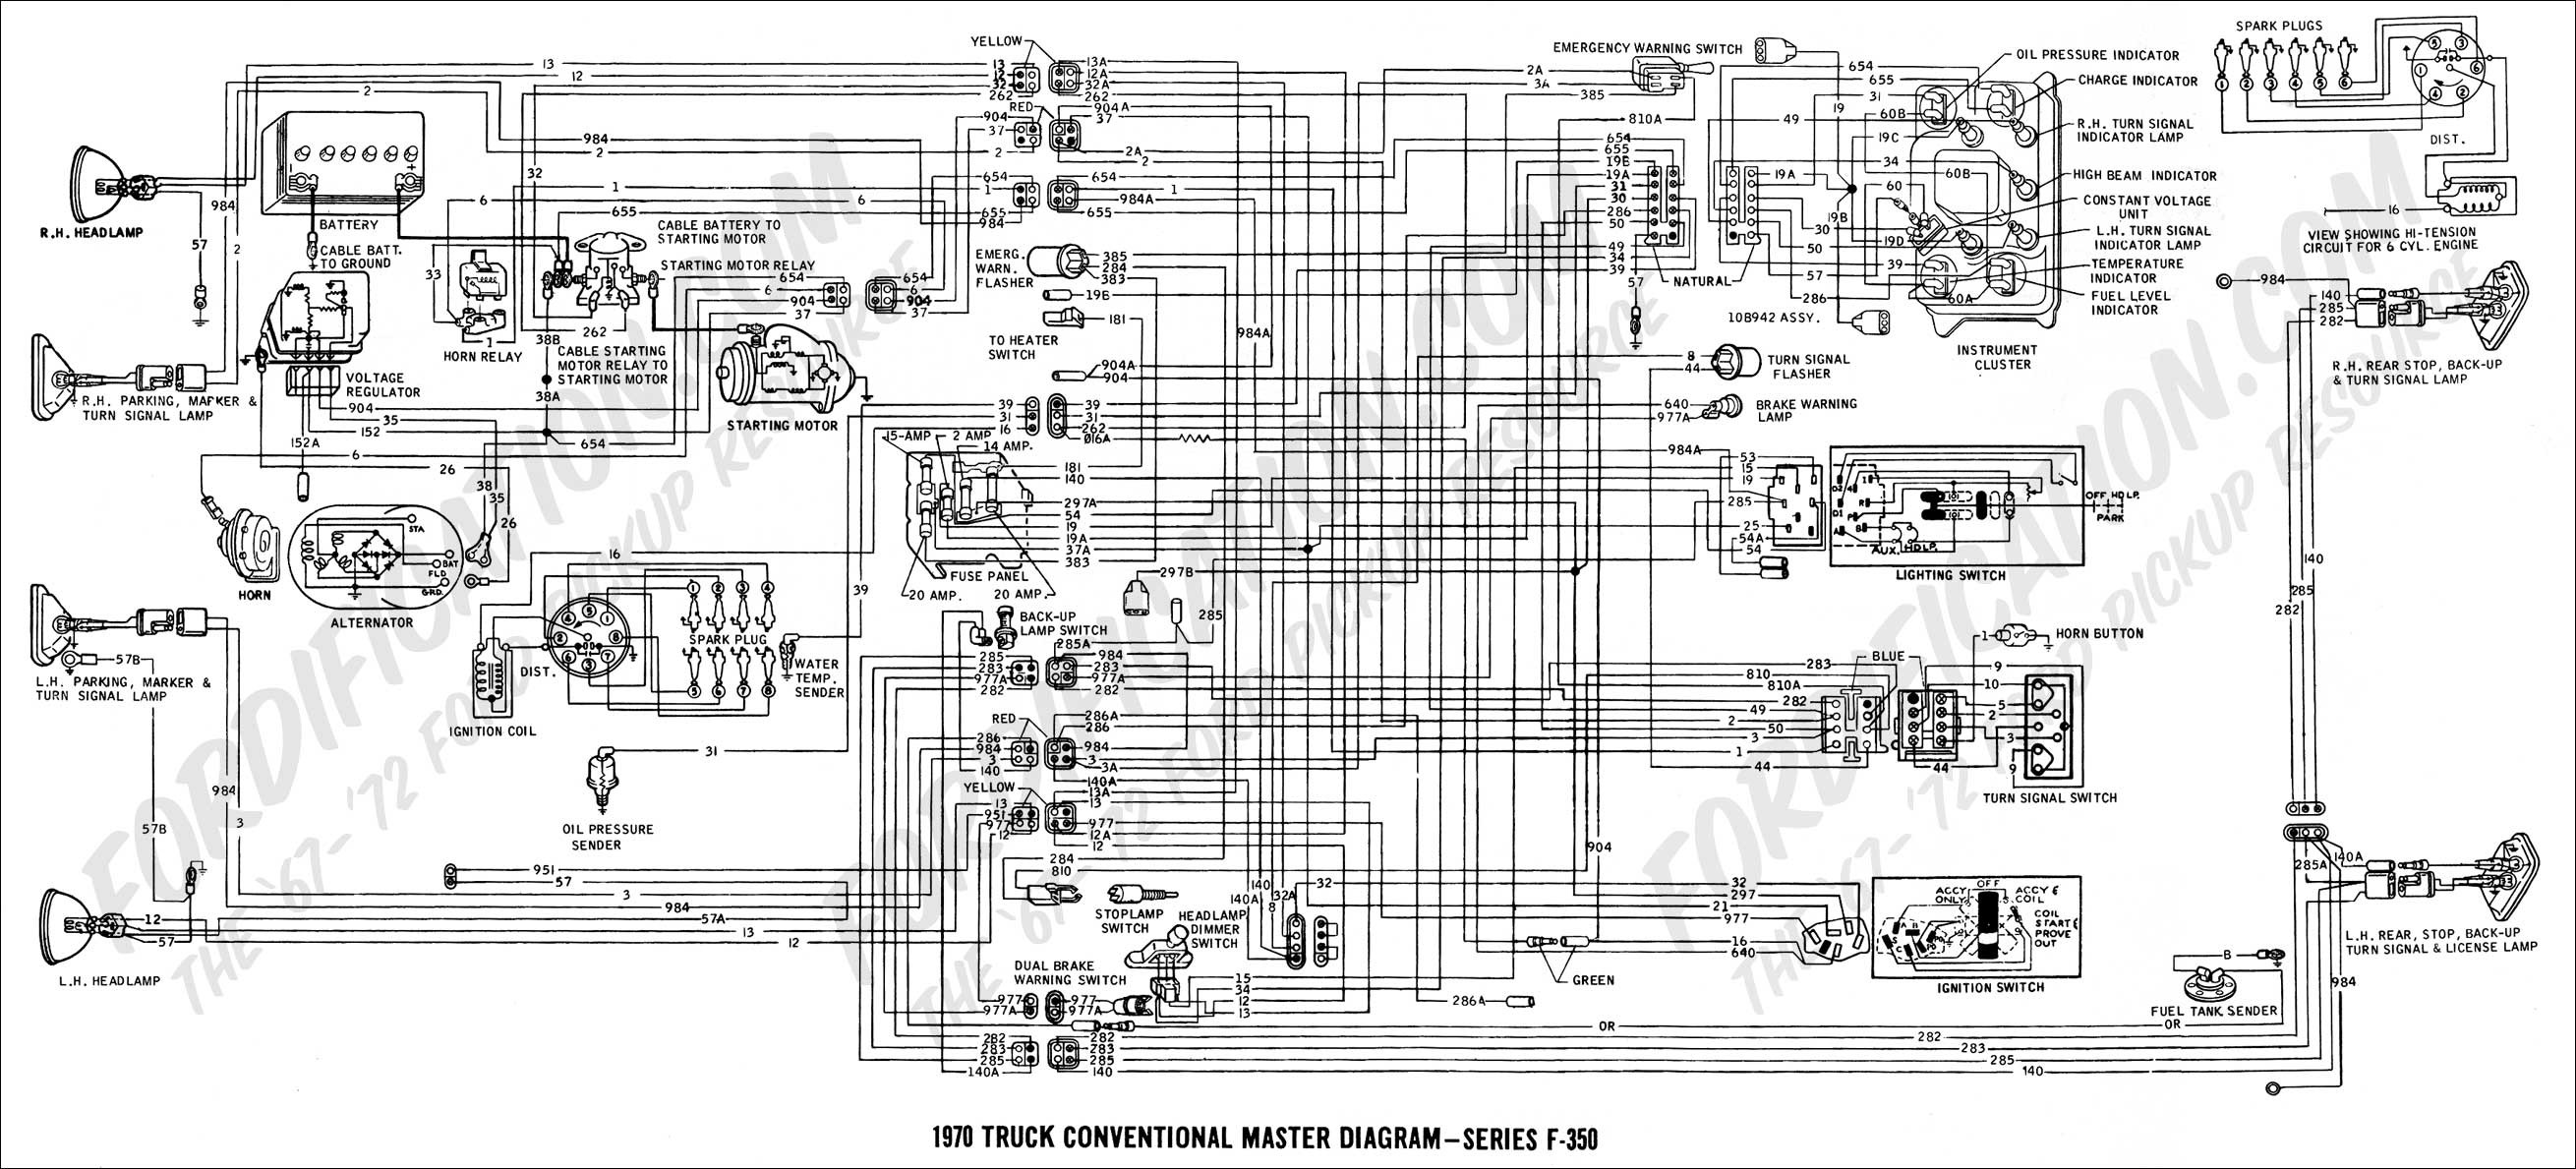 Schematic Diagram Of Diesel Engine Symbols Threads Free Wiring In Addition On Related Post